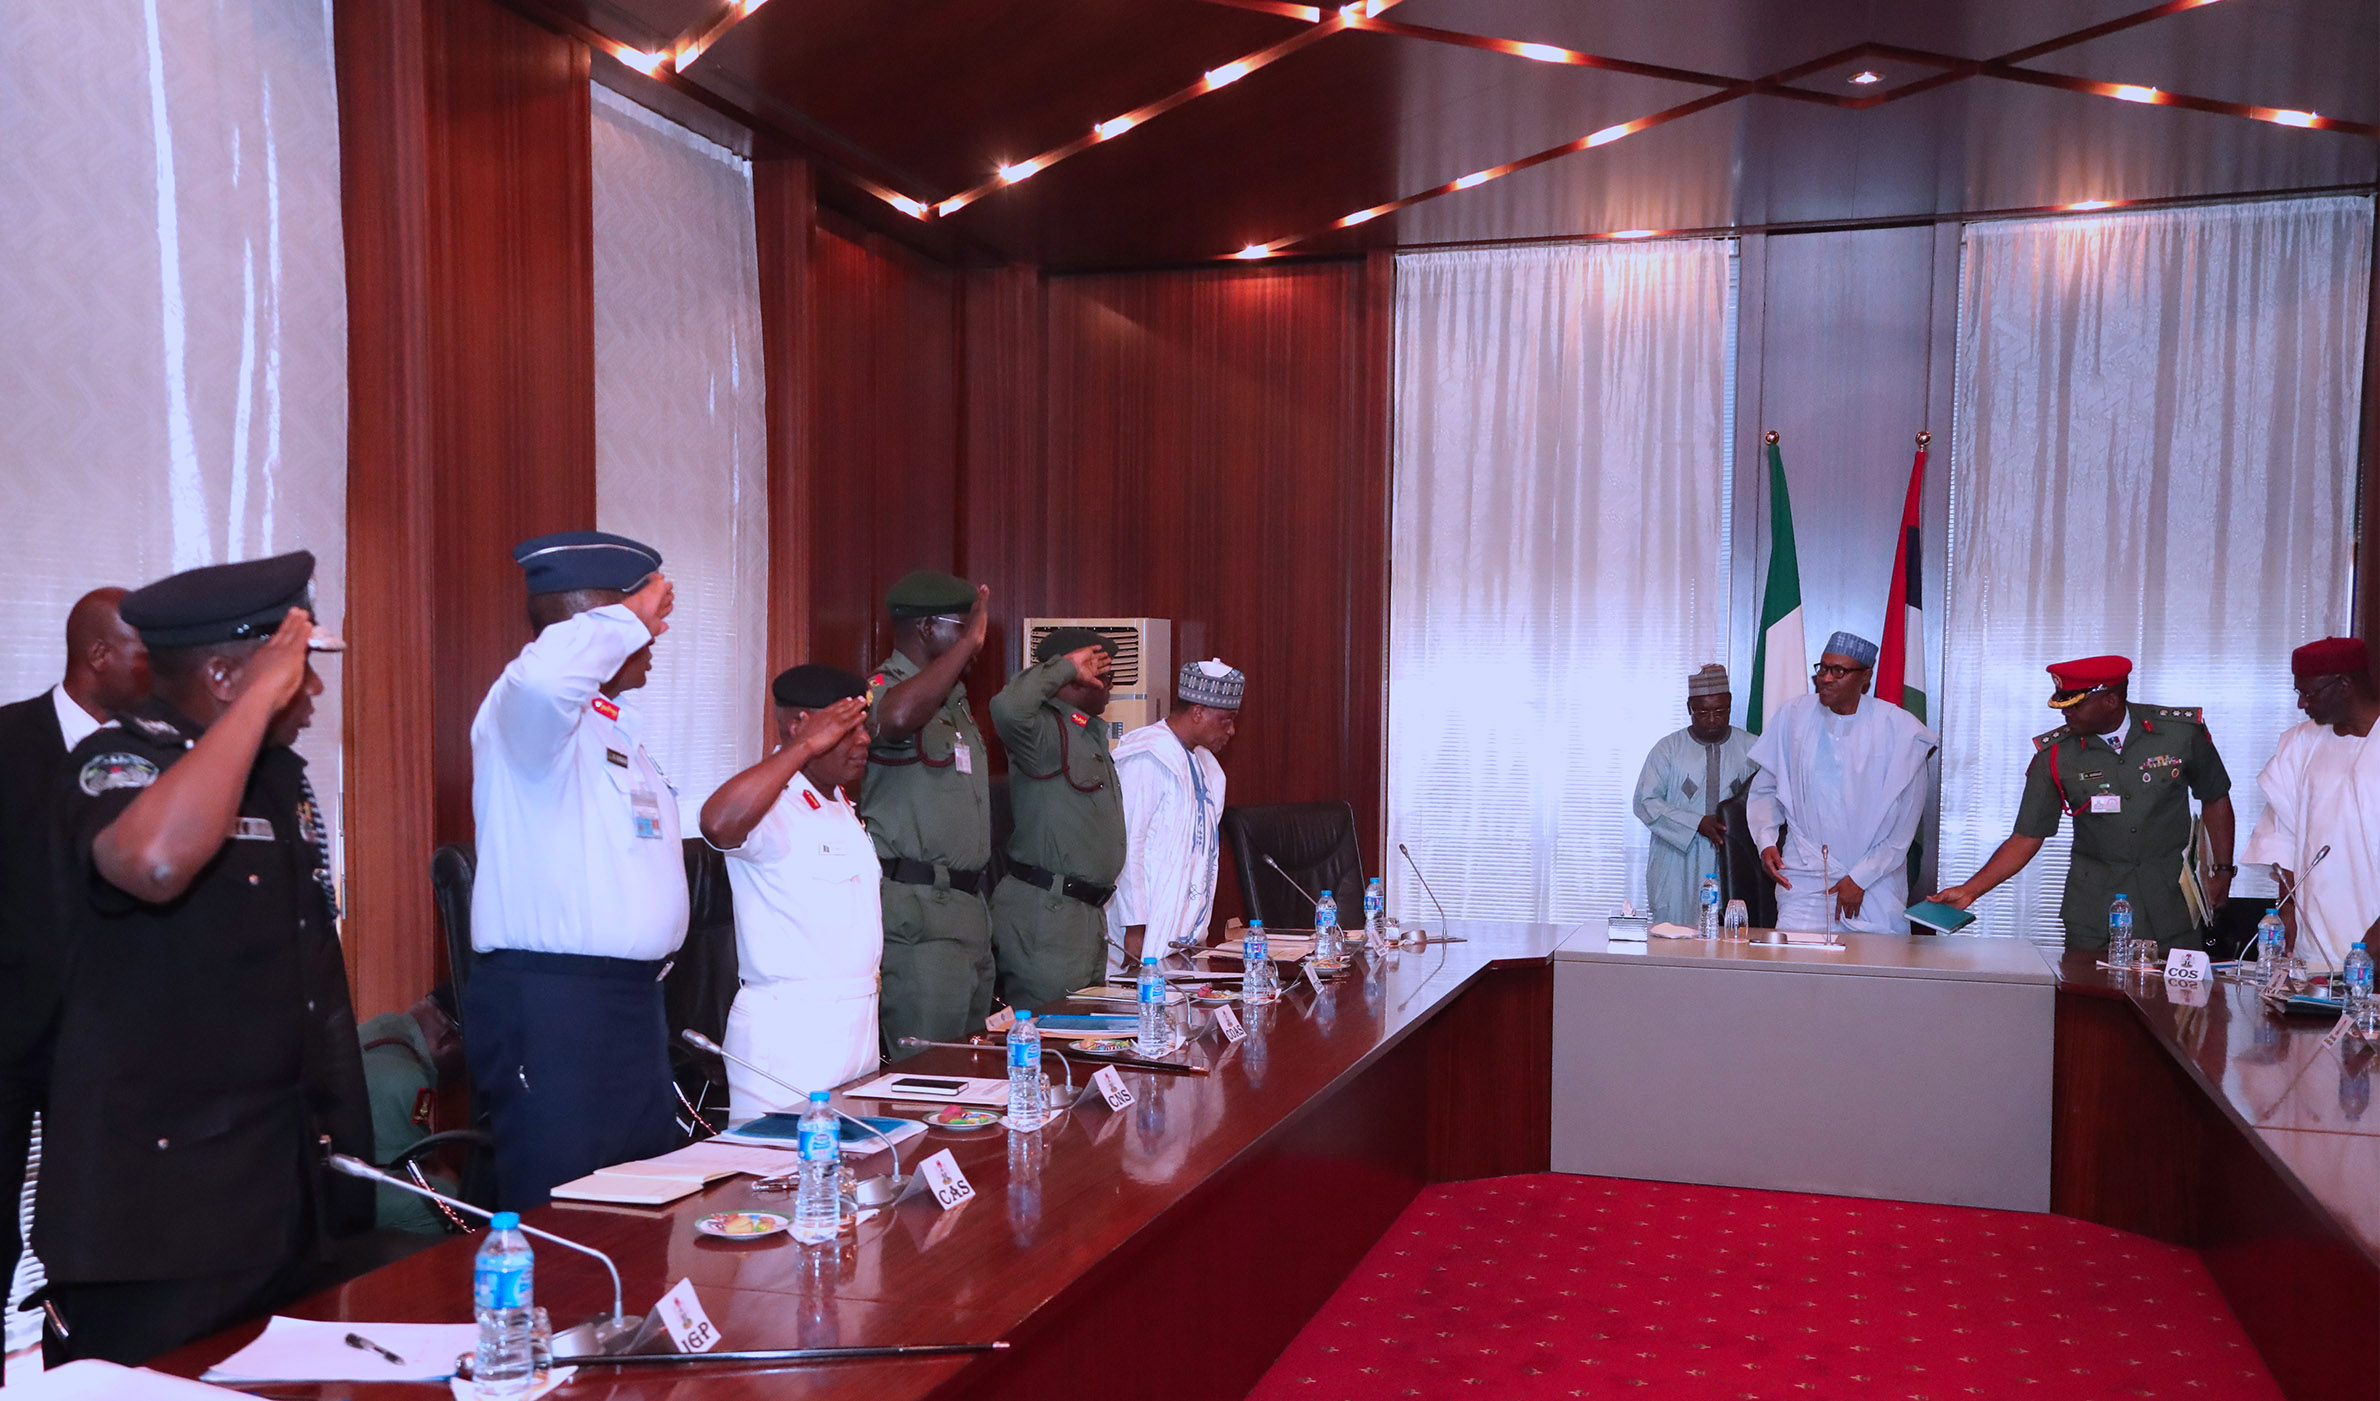 PRESIDENT BUHARI MEETS WITH SERVICE CHIEFS 1. R-L; President Muhammadu Buhari in a meeting with Service Chiefs; Minister of Defence, Brig Gen Mansur Dan Ali, Chief of Defence Staff General Abayomi Olonosakin, Minister of Army, Lt General T.Y Buratai and Chief of Naval Staff, Vice Admiral Ibok-Ete Ekwe Ibas during the Security meeting at the State House Abuja. PHOTO; SUNDAY AGHAEZE. APRIL 4 2018.